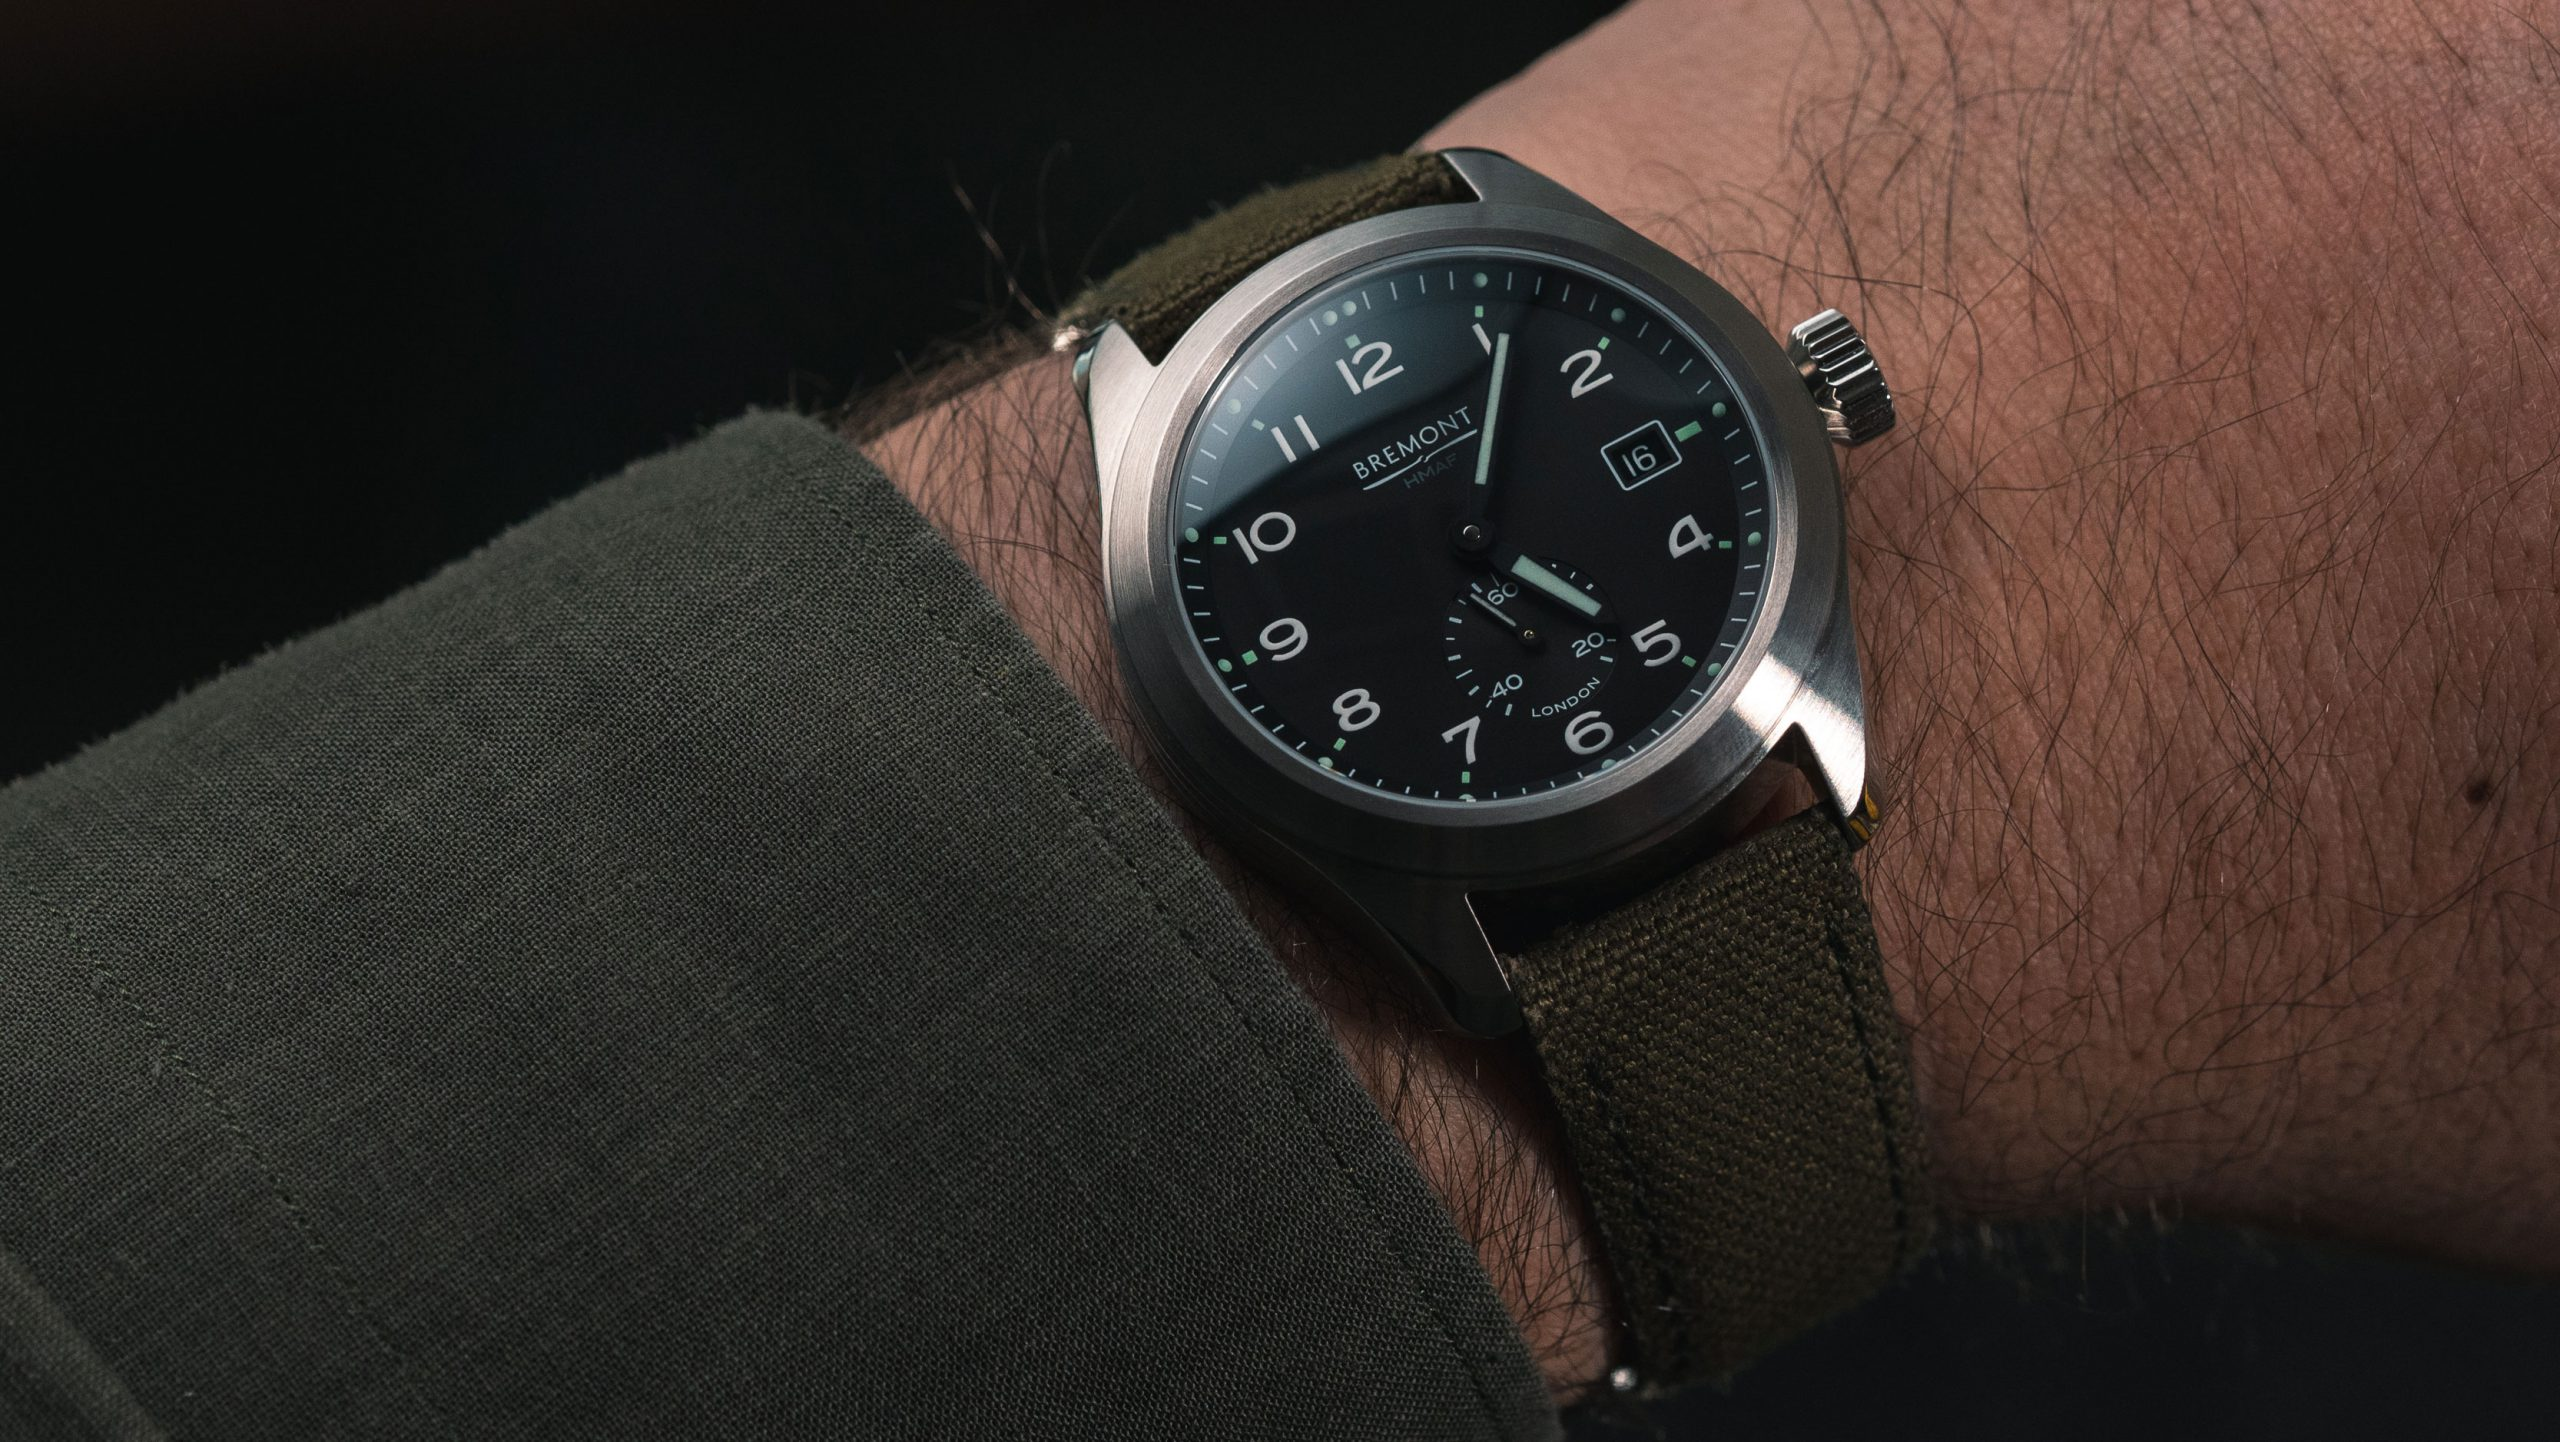 VIDEO: 5 highlights from Bremont's 2019 collection